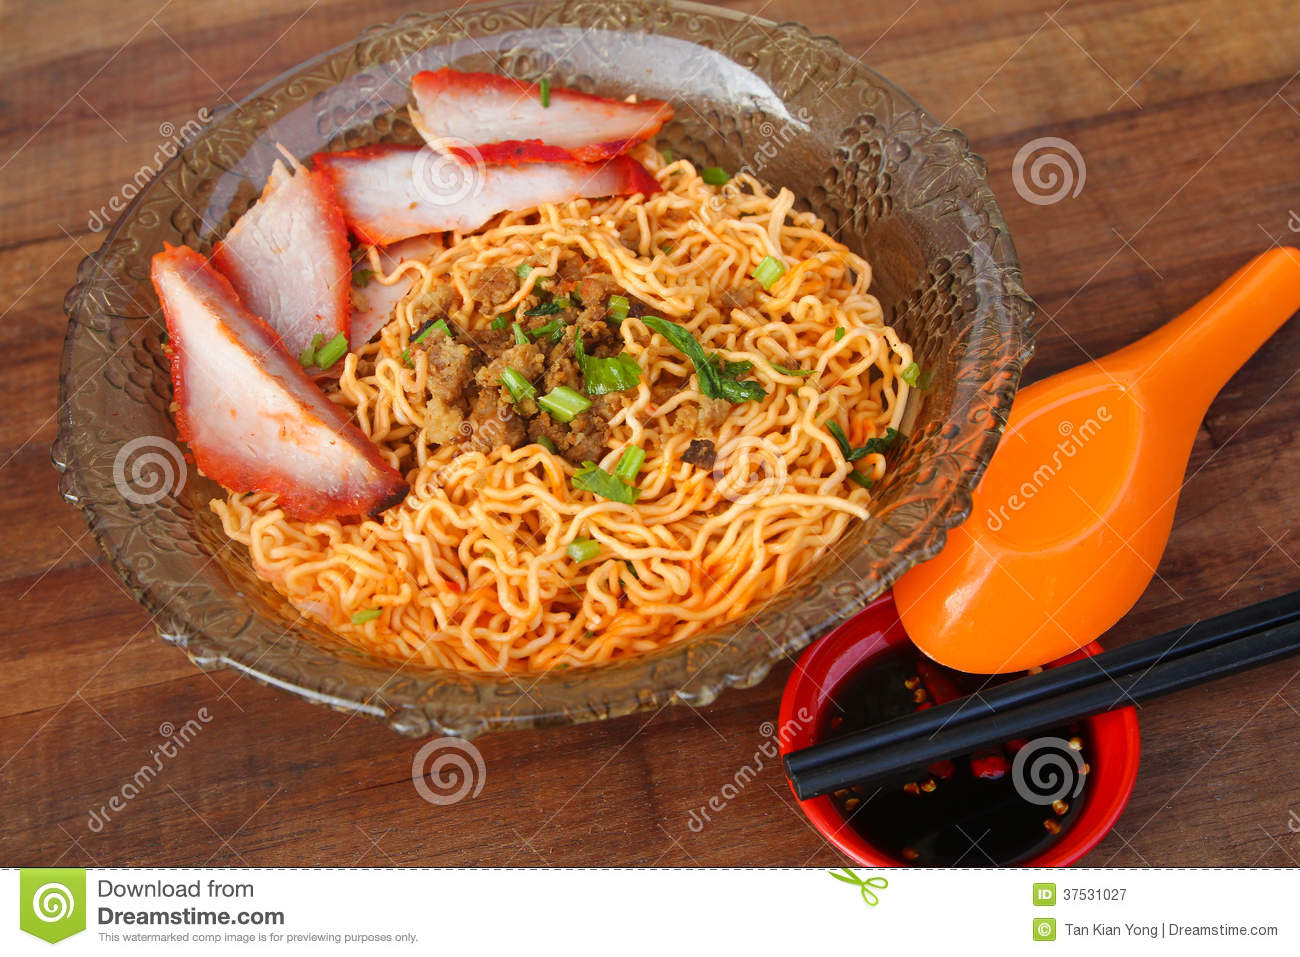 Local cuisine kolo mee in kuching sarawak malaysia for Cuisine en locale